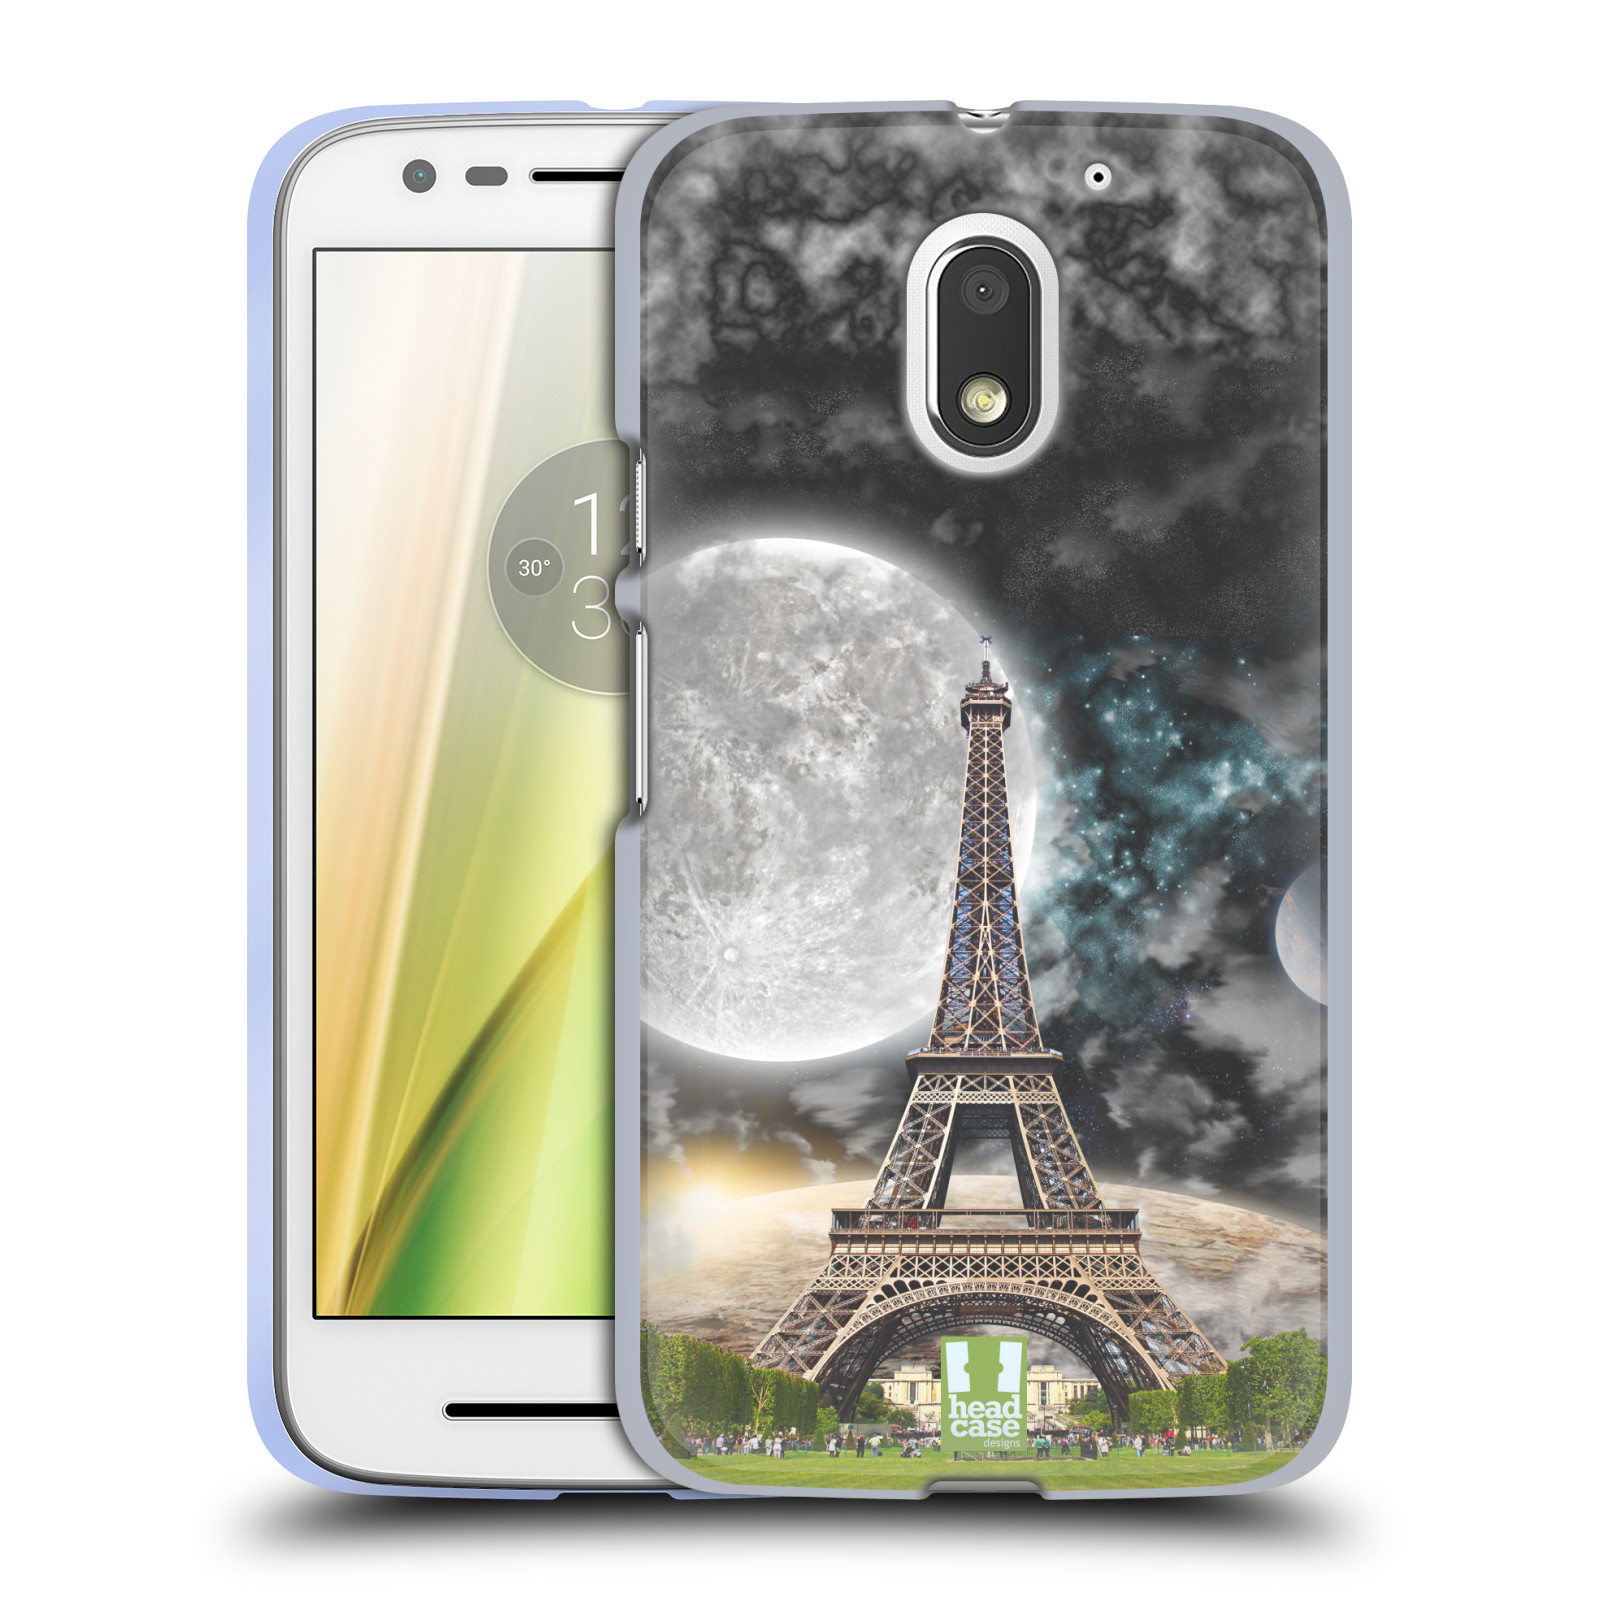 HEAD-CASE-PAYSAGES-SURREALISTES-ETUI-COQUE-EN-GEL-POUR-MOTOROLA-MOTO-E3-POWER